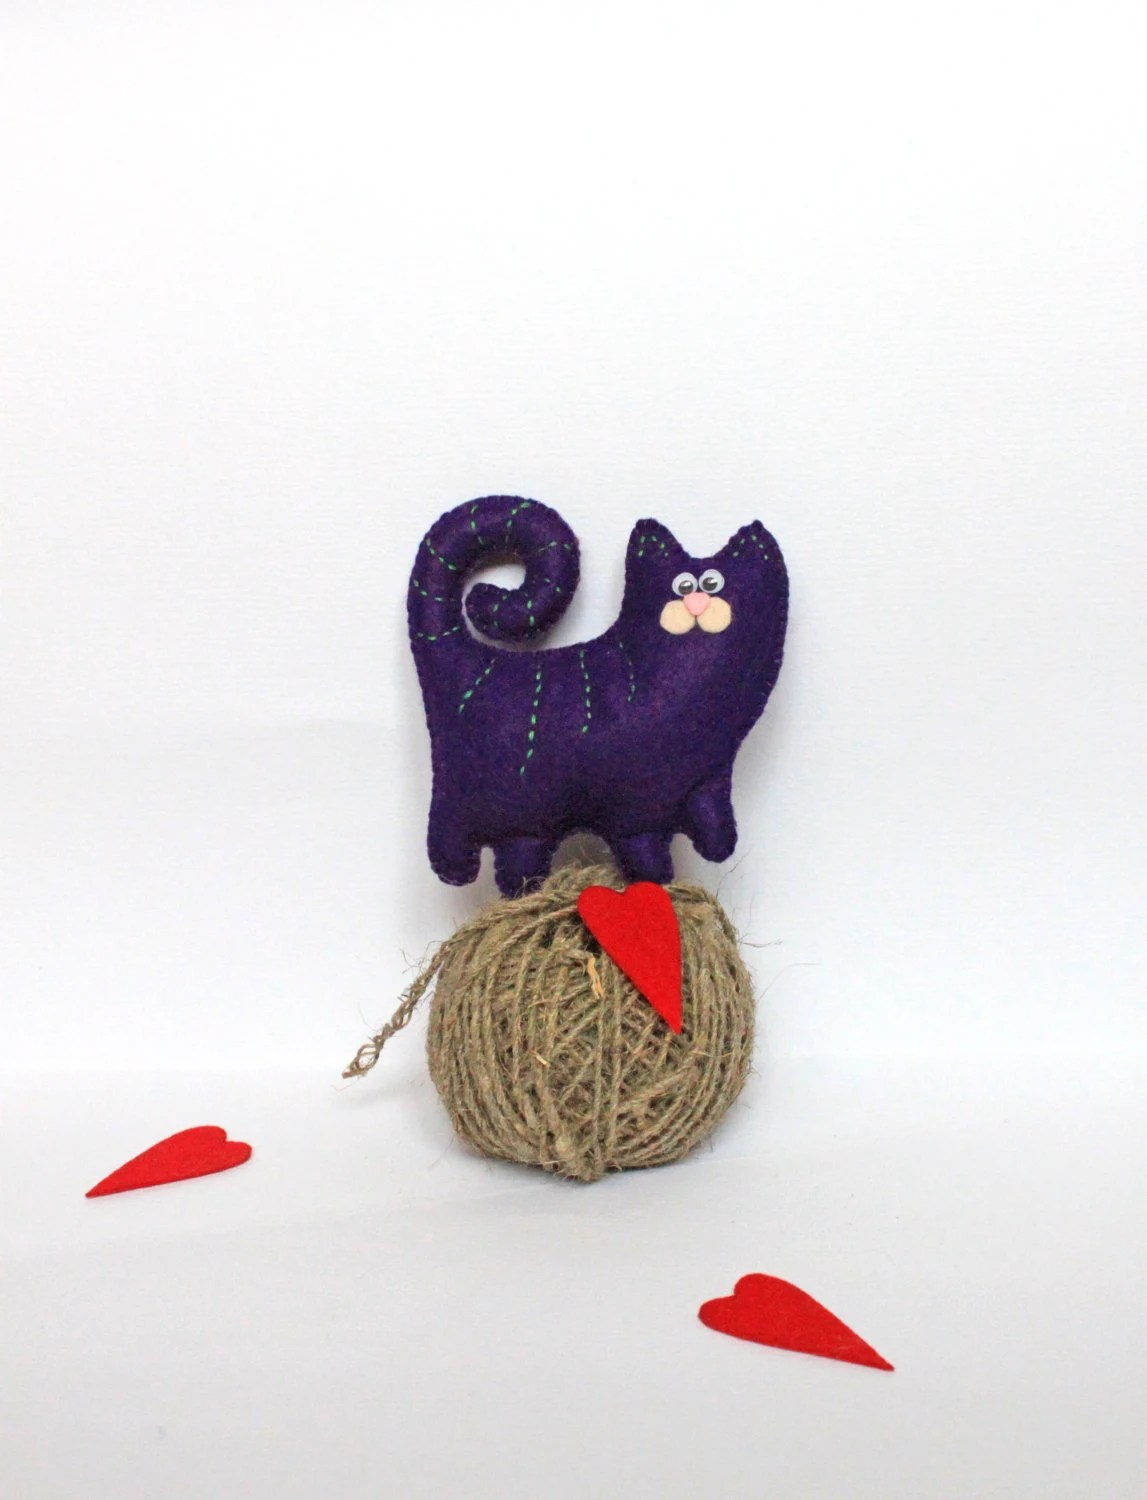 Felt cat home decor - Felt cat pin - - MiracleInspiration